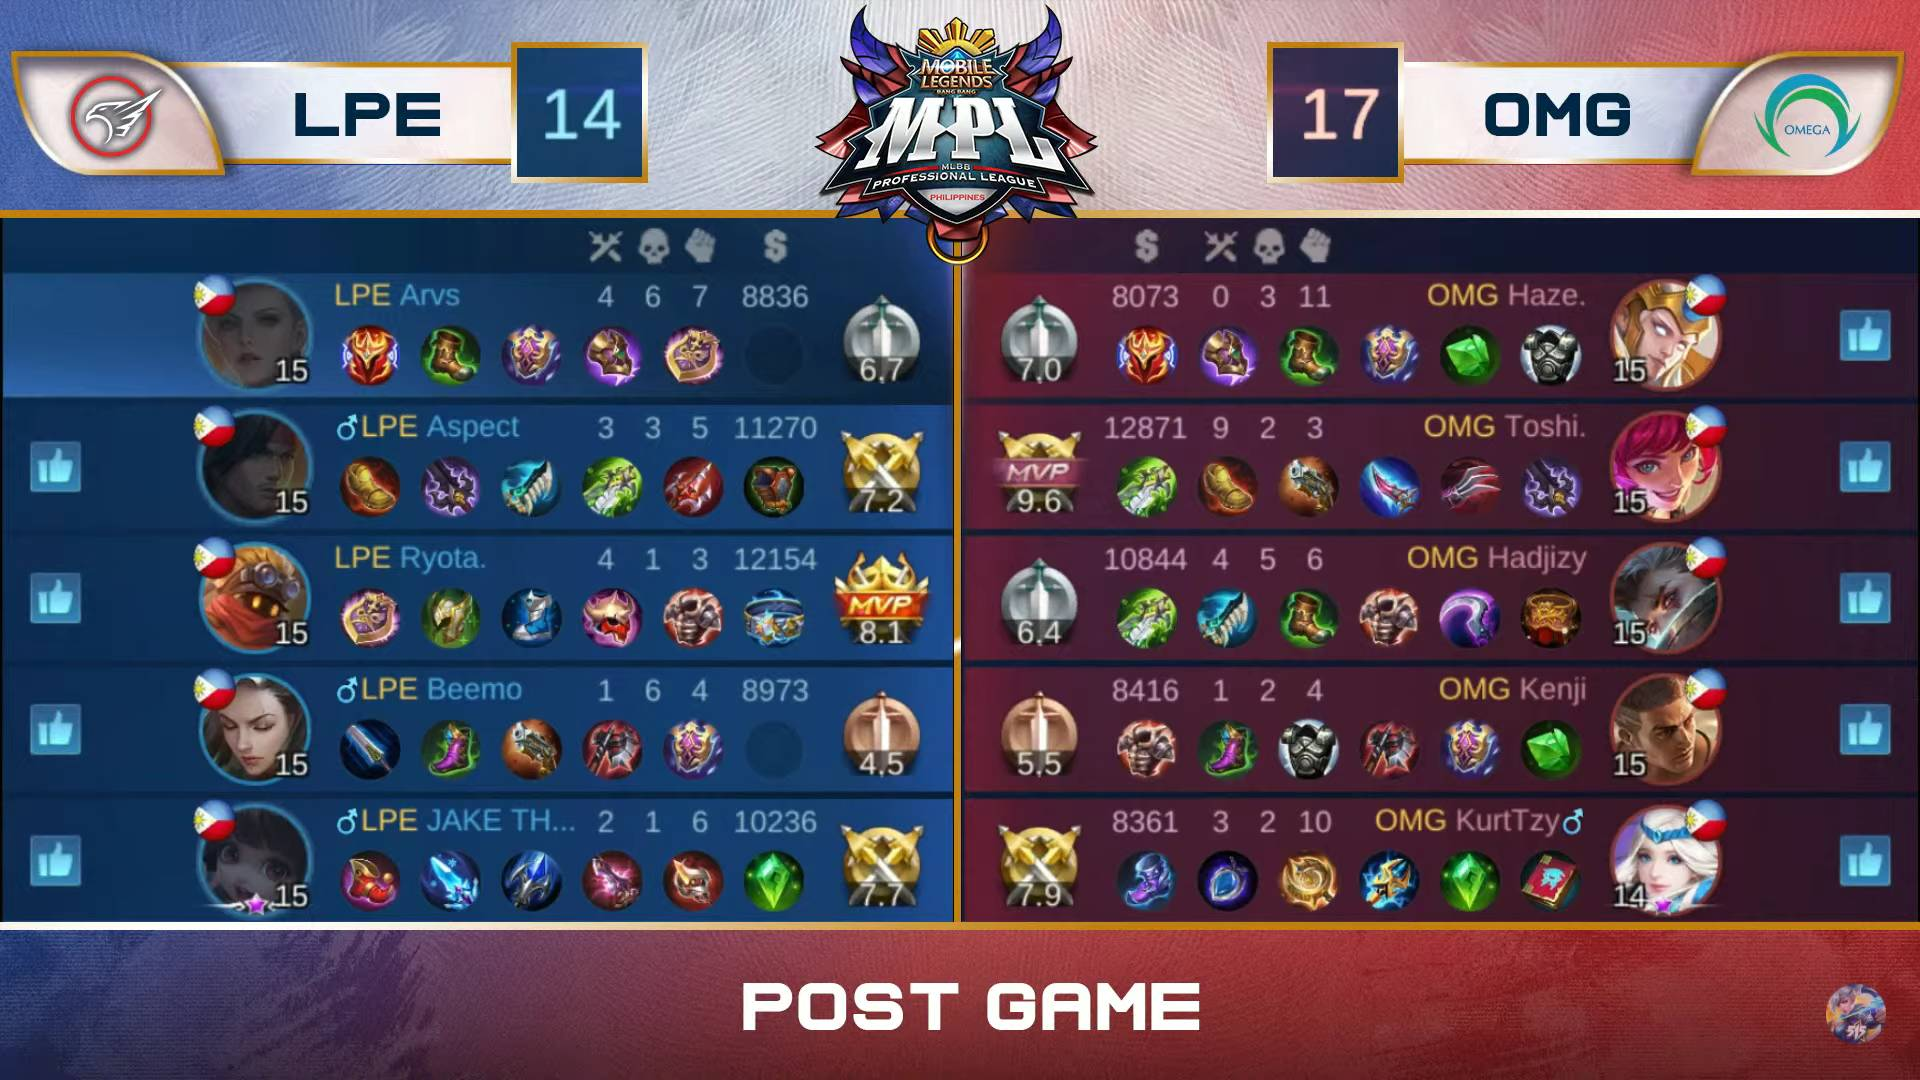 MPL-PH-7-Playbook-def-Omega-Game-3 Beemo plays hero as Playbook shocks Omega for second win in MPL-PH ESports Mobile Legends MPL-PH News  - philippine sports news